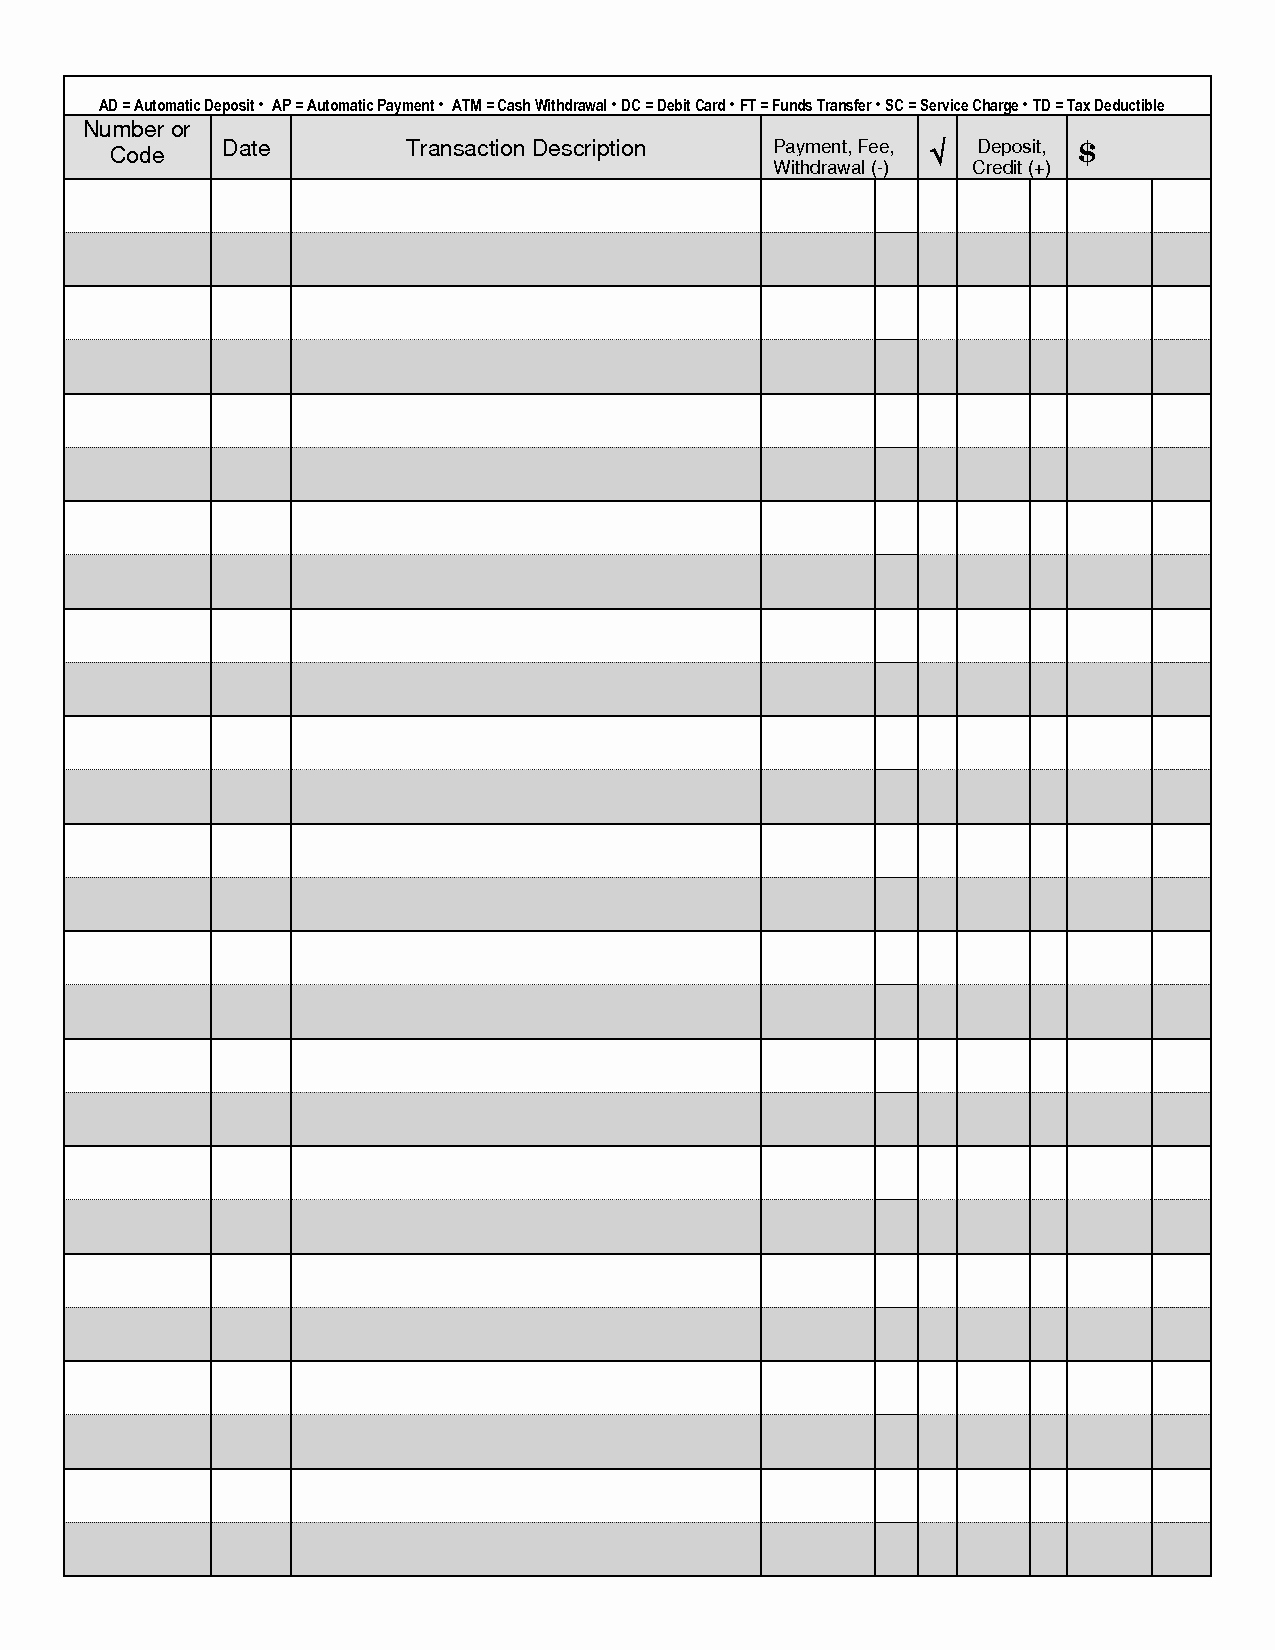 Large Print Check Register Printable Best Of Printable Check Register when You are Searching for